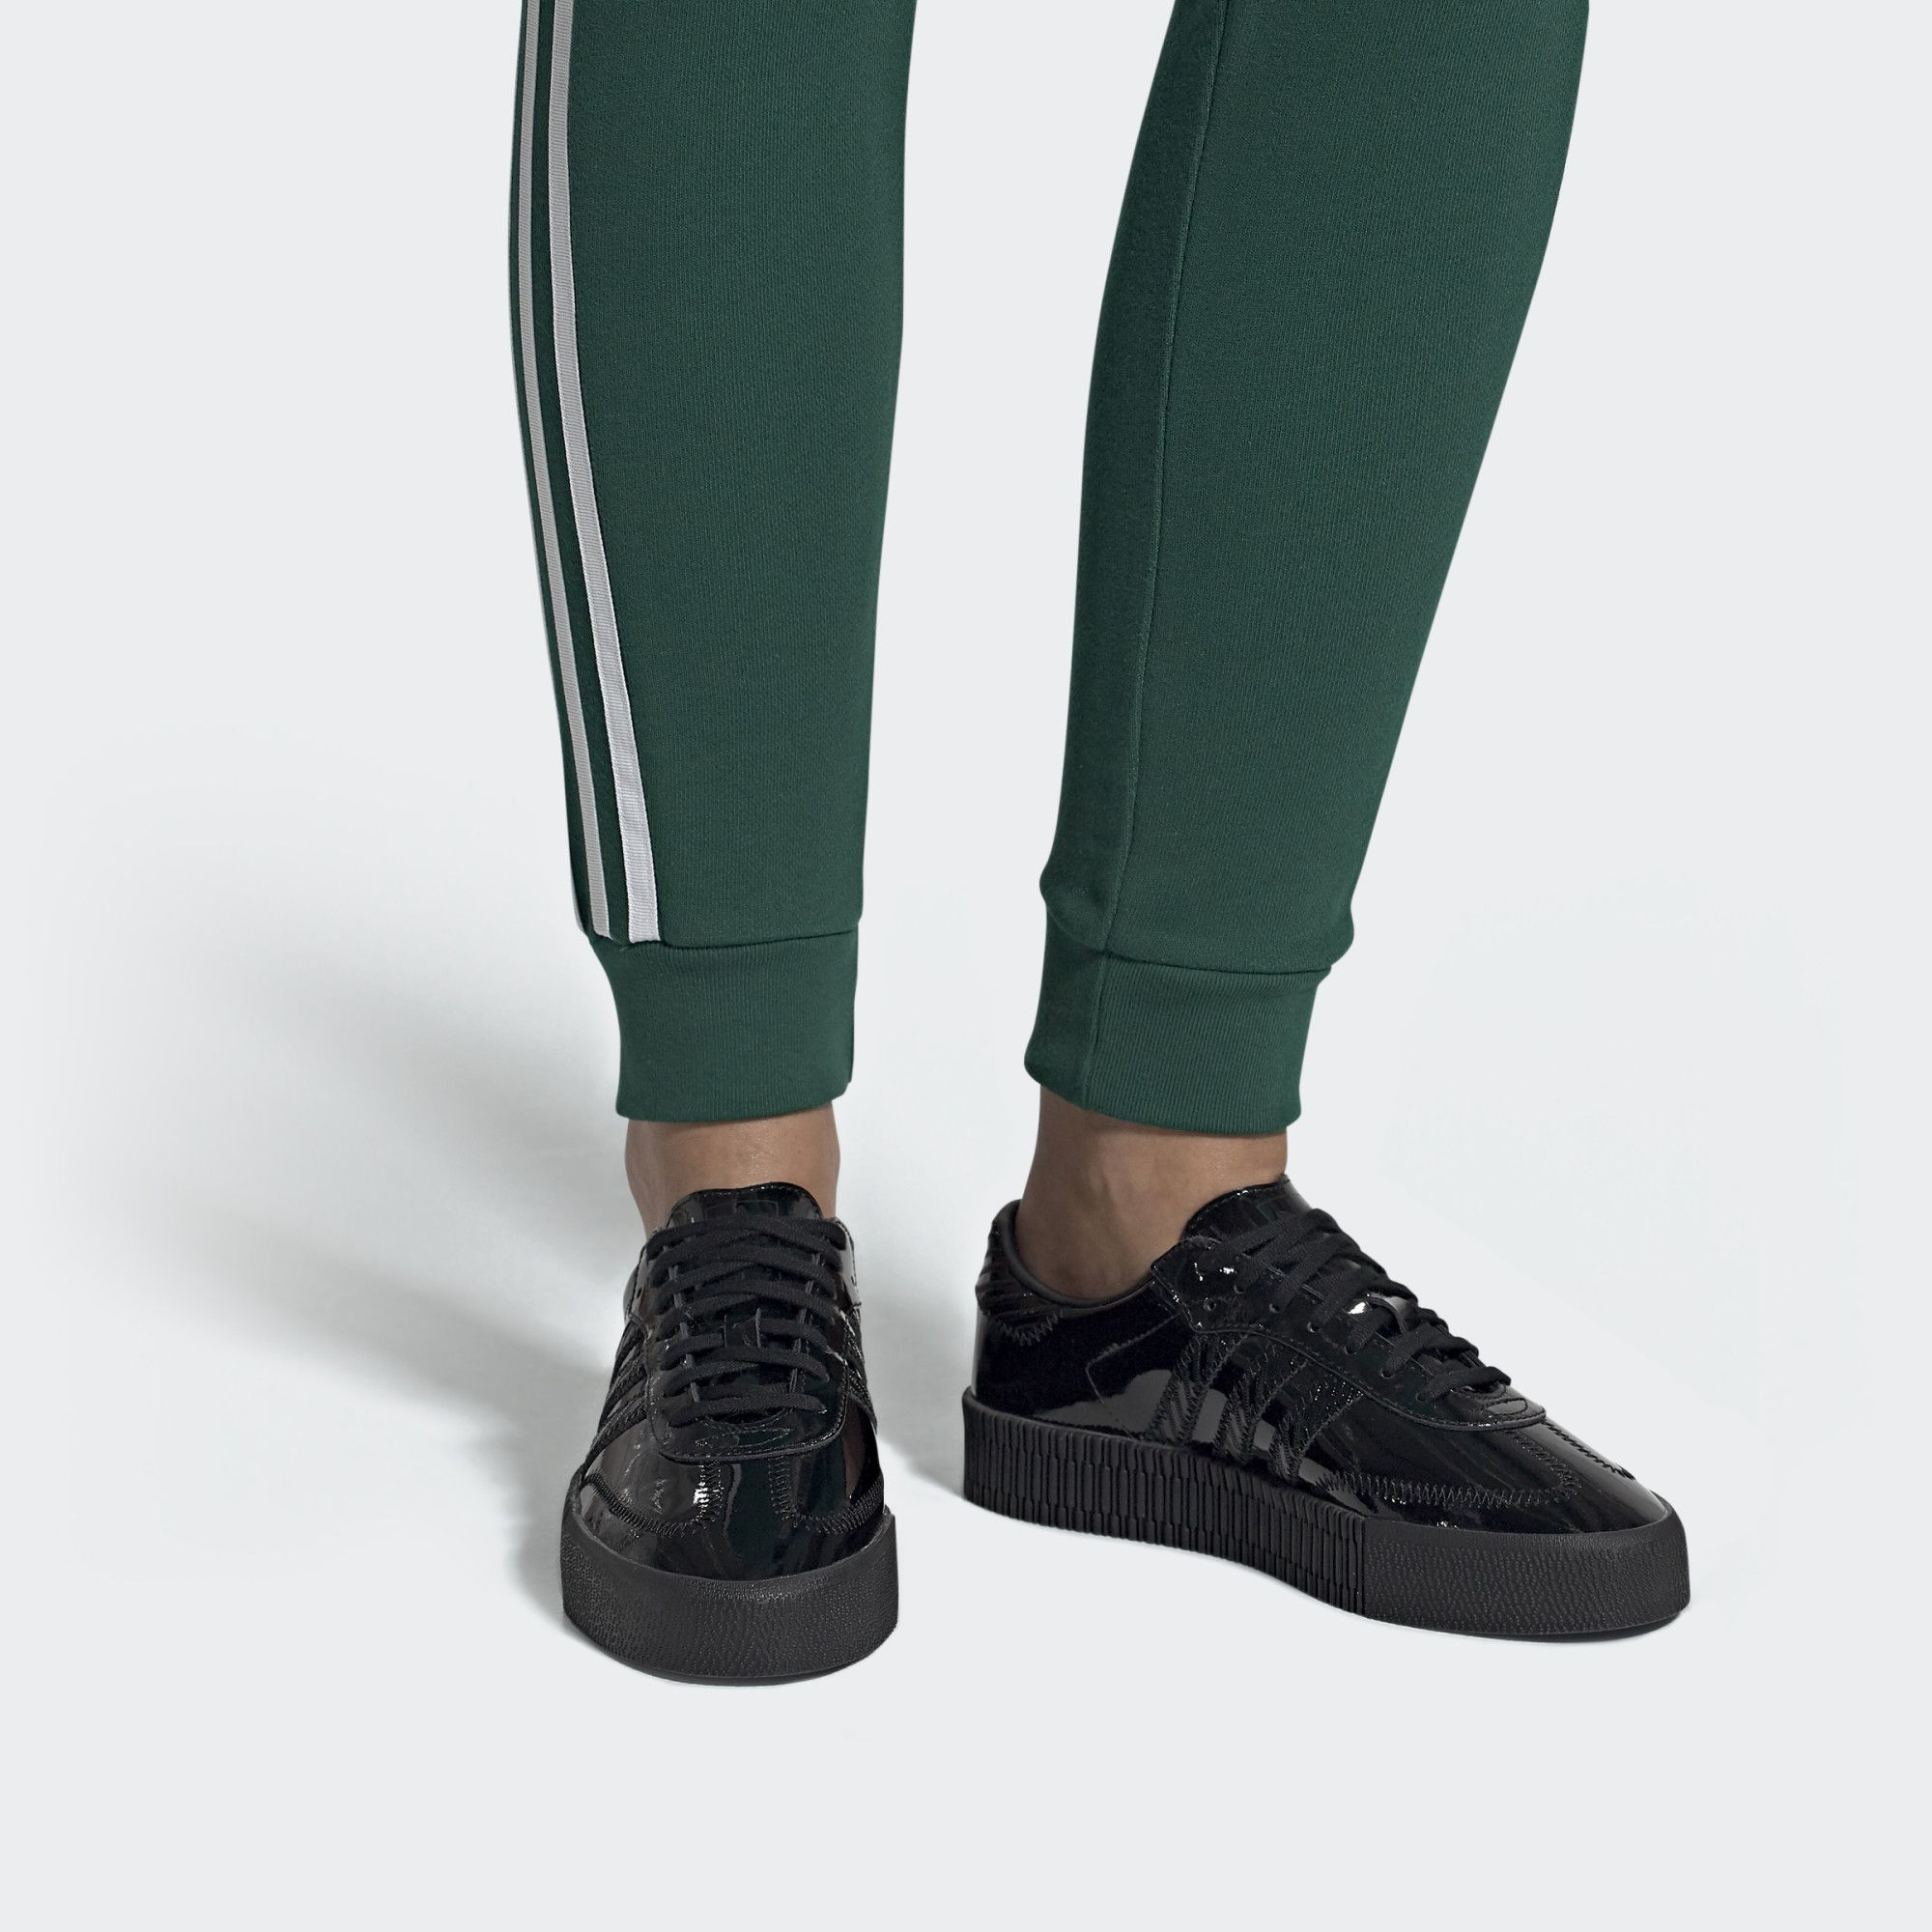 SAMBAROSE Shoes Black Womens | Shoes, Black adidas, Black shoes